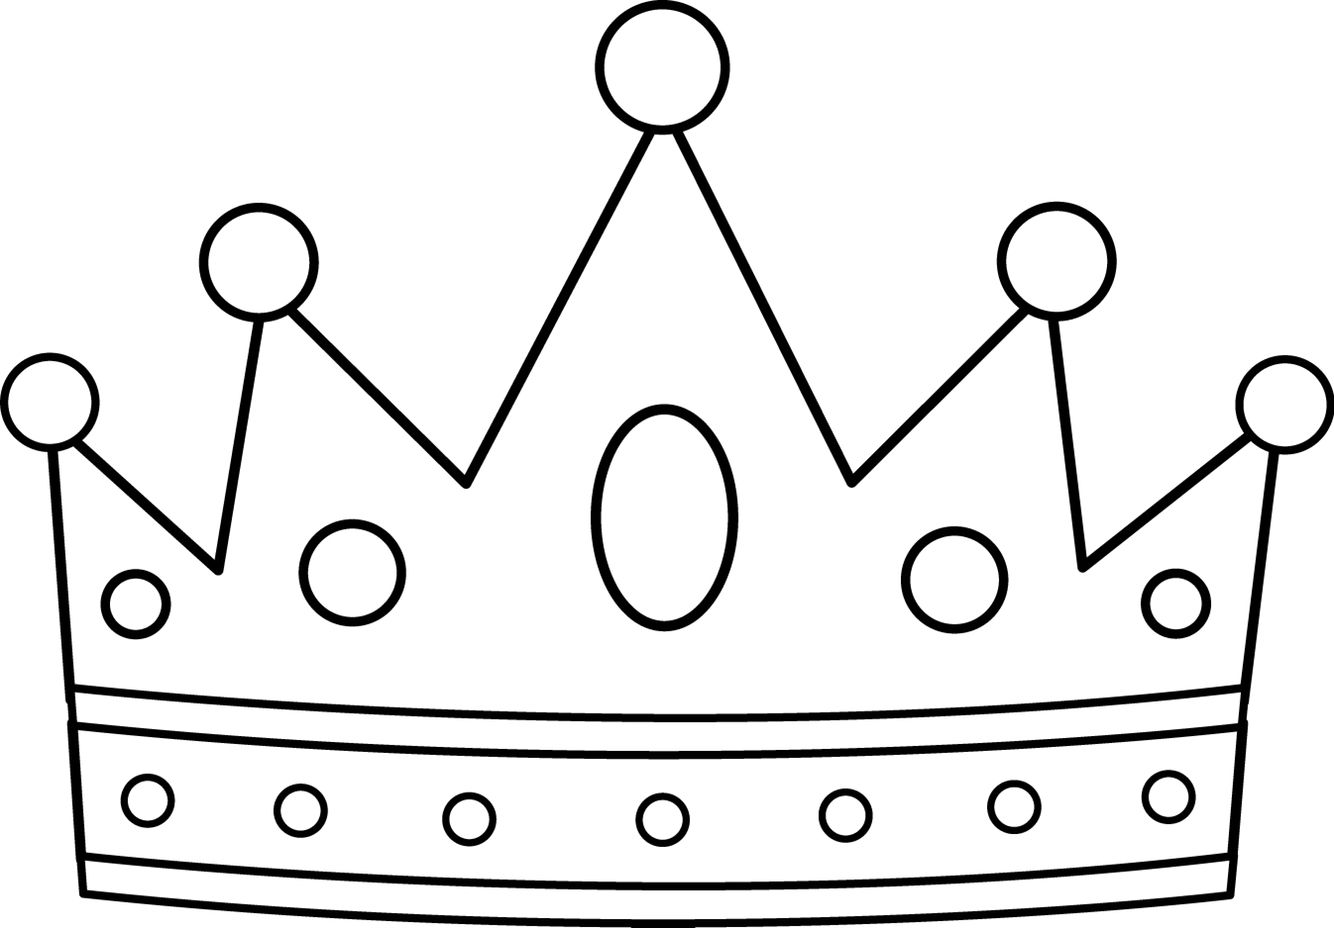 crown coloring page coloring pages pinterest crown and church